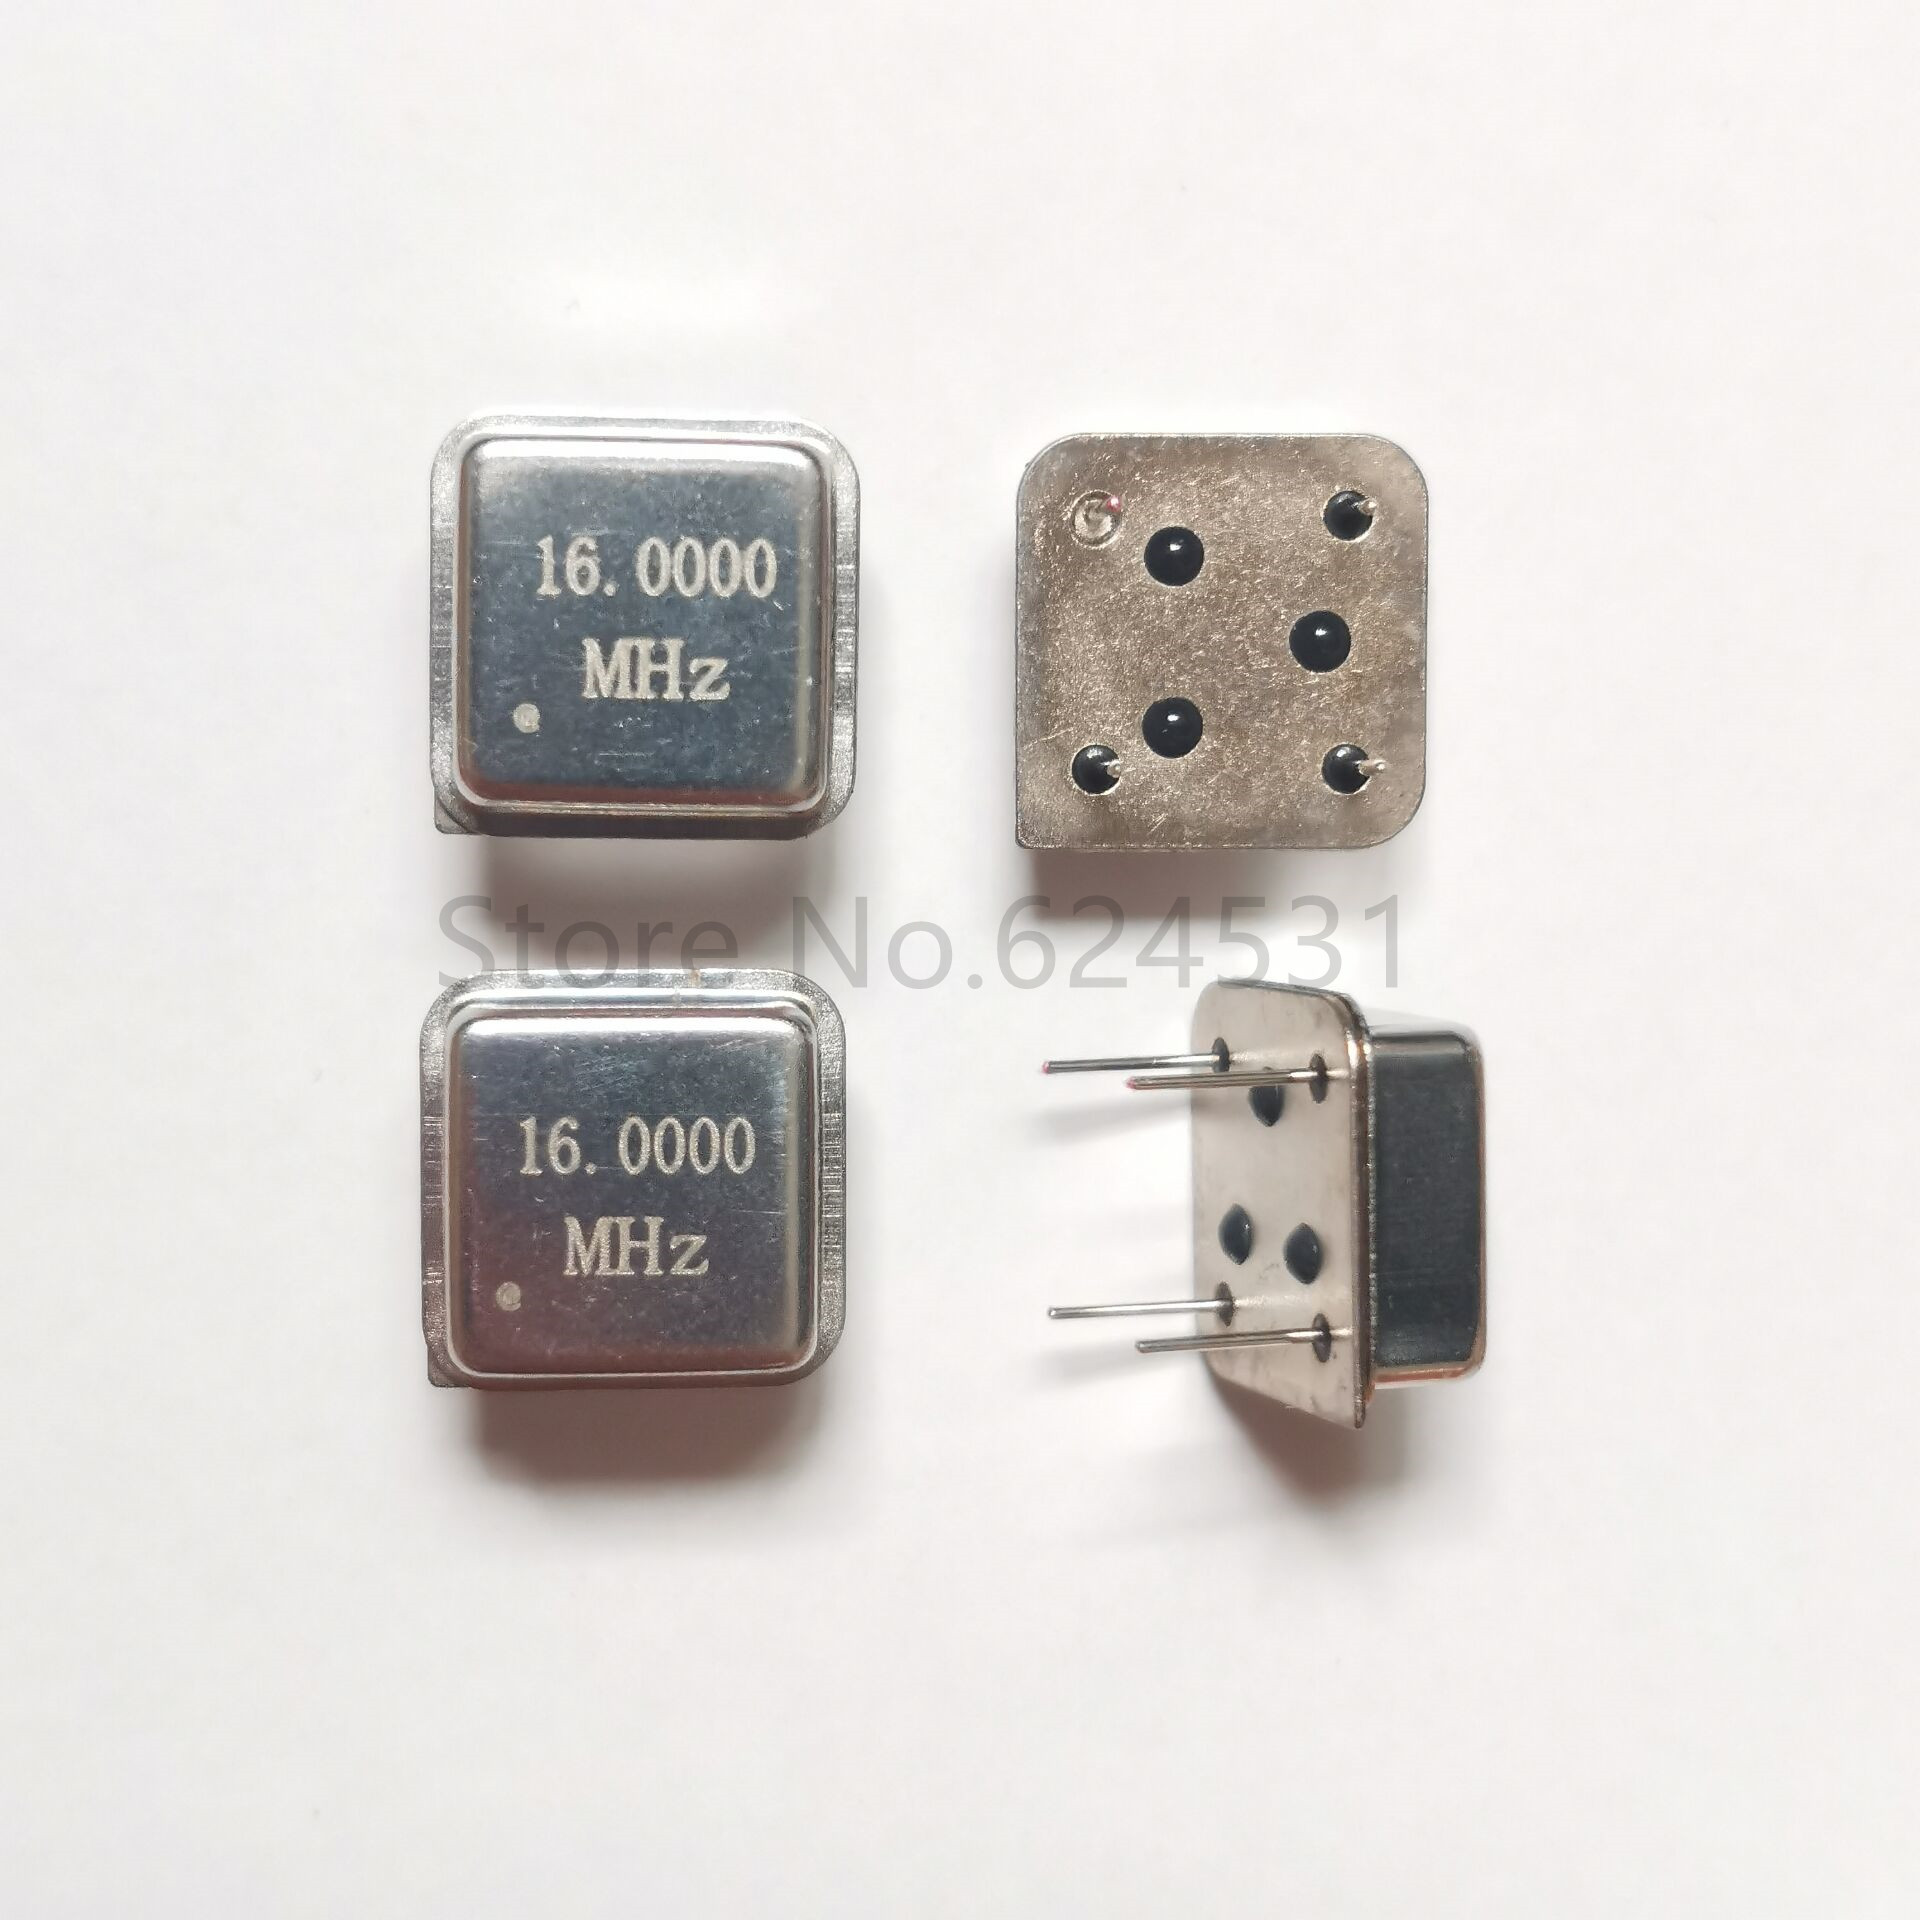 10pcs In-line Active Crystal Oscillator Clock Square Half Size DIP-4 OSC 16MHZ 16.000MHZ 16M